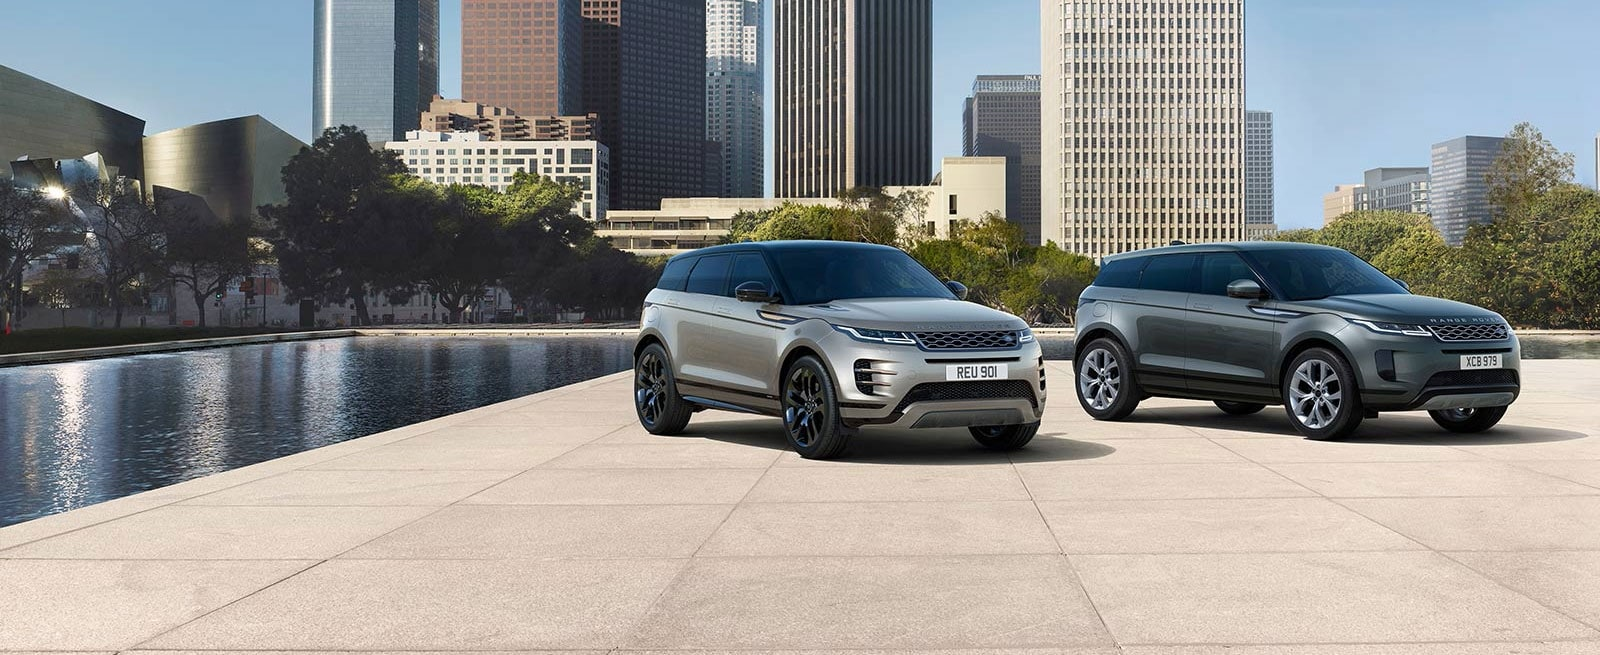 Bronze and Grey Range Rover Evoques Displayed Side By Side in a City